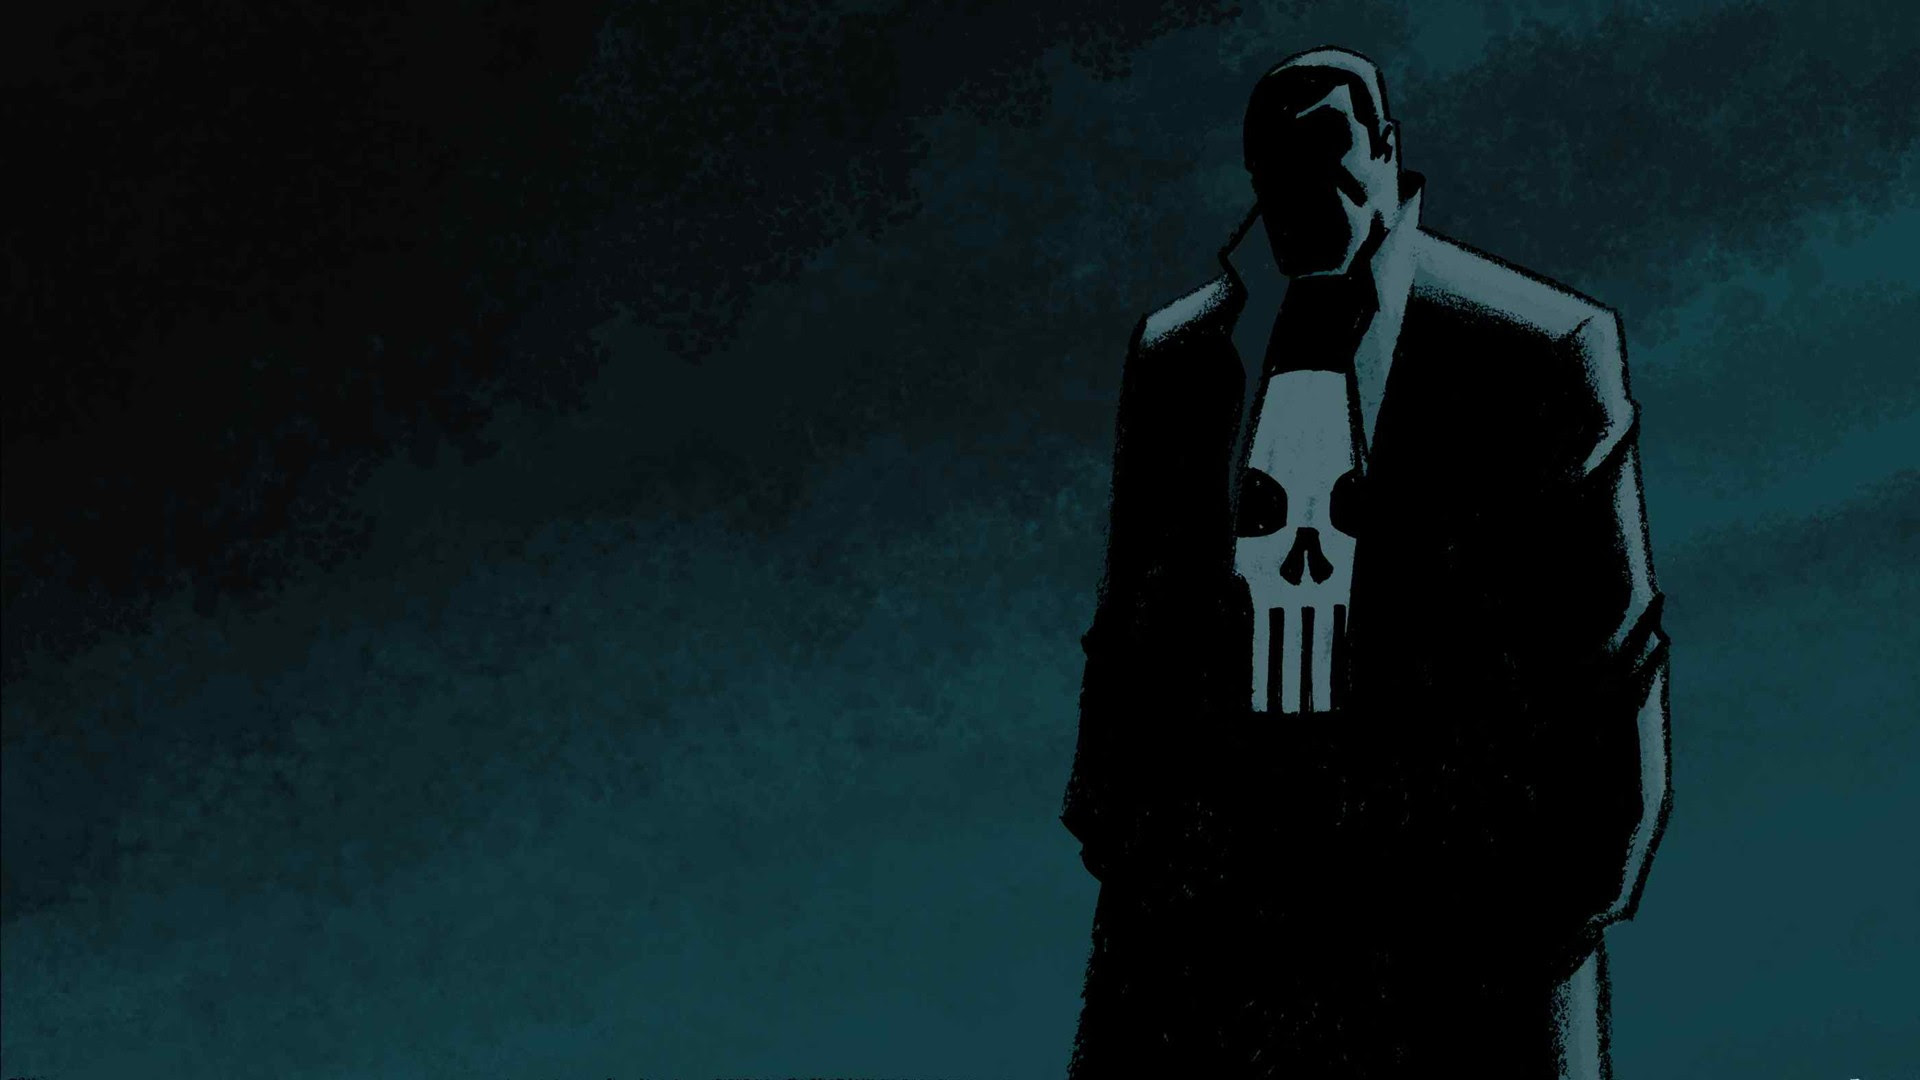 OpEd: DAREDEVIL Could Hopefully Lead to a New PUNISHER  Nerdist